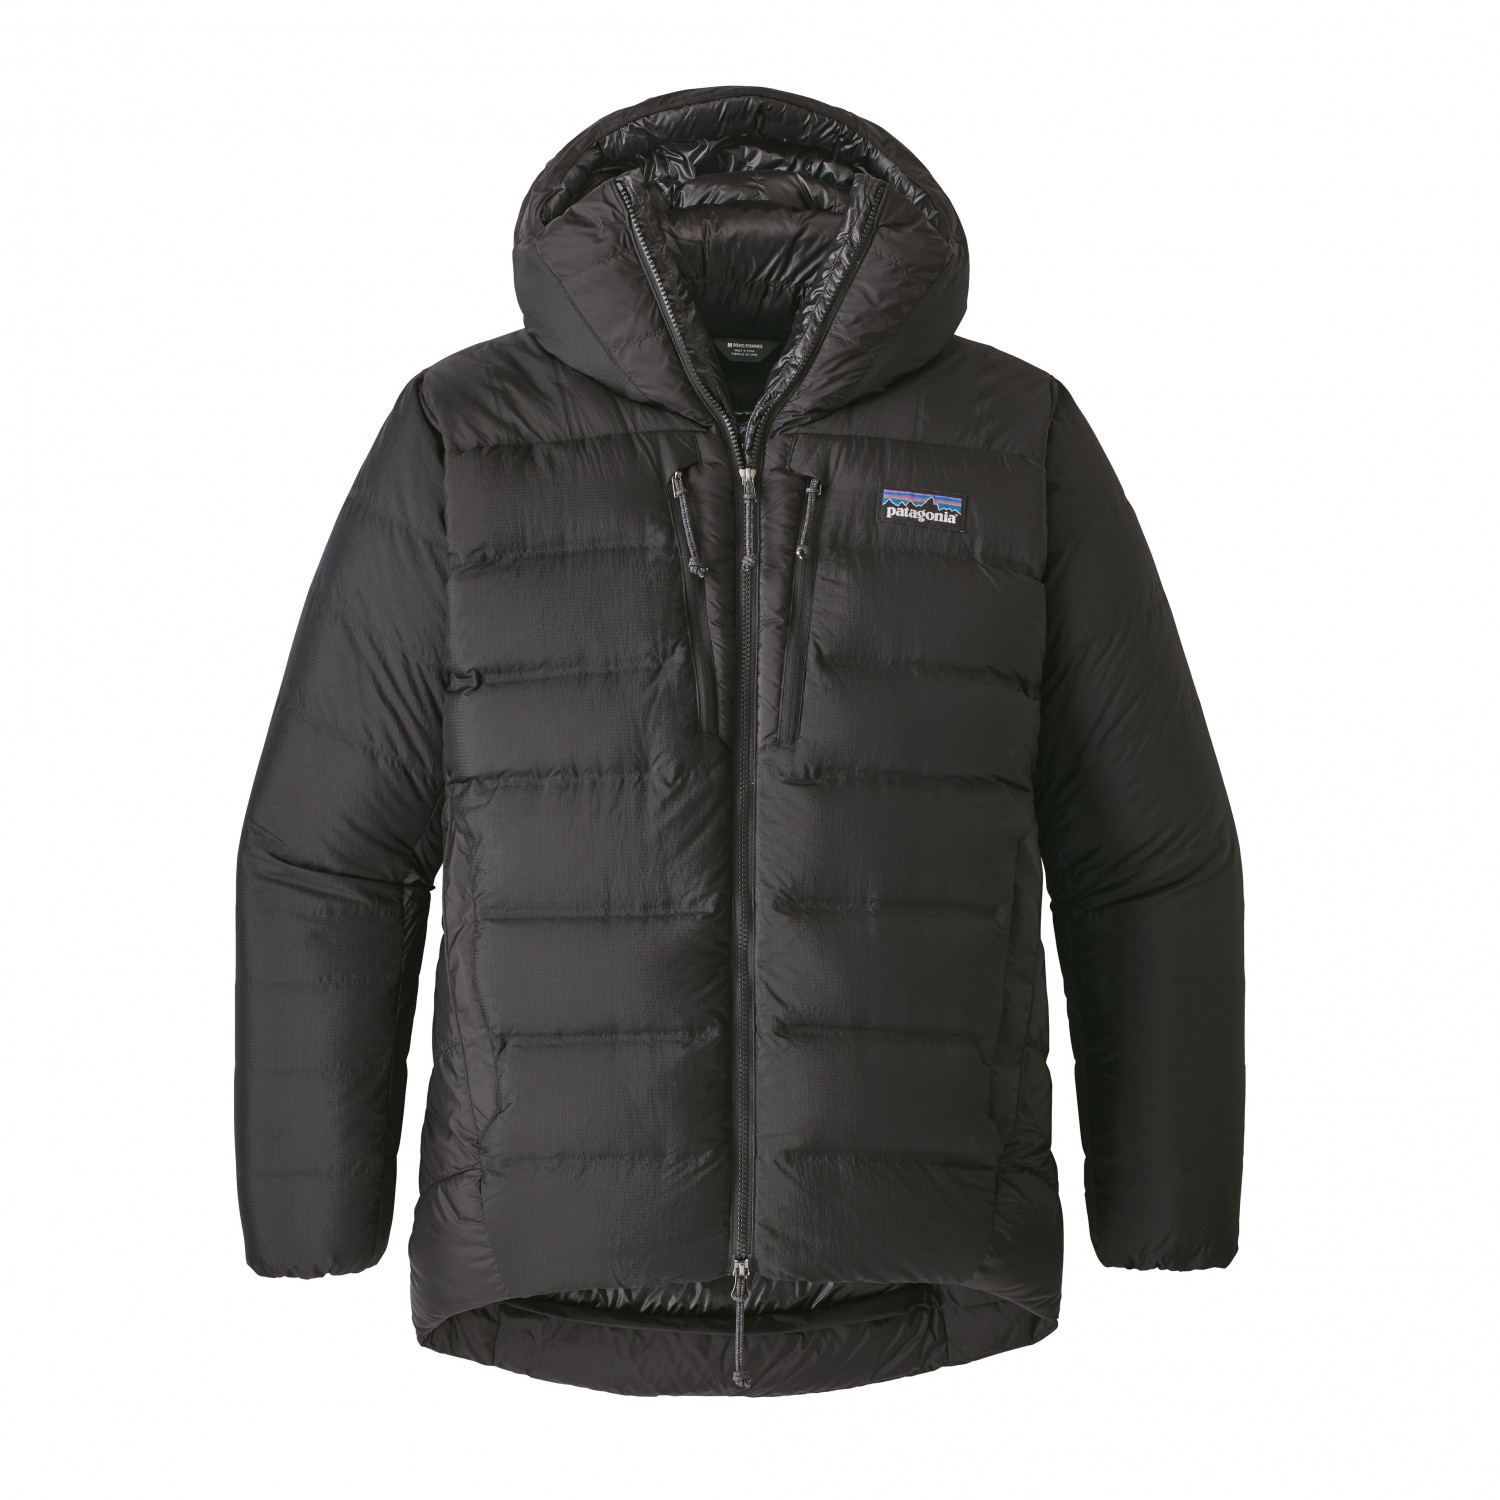 Patagonia Grade VII Down Parka Down jacket Fire | S